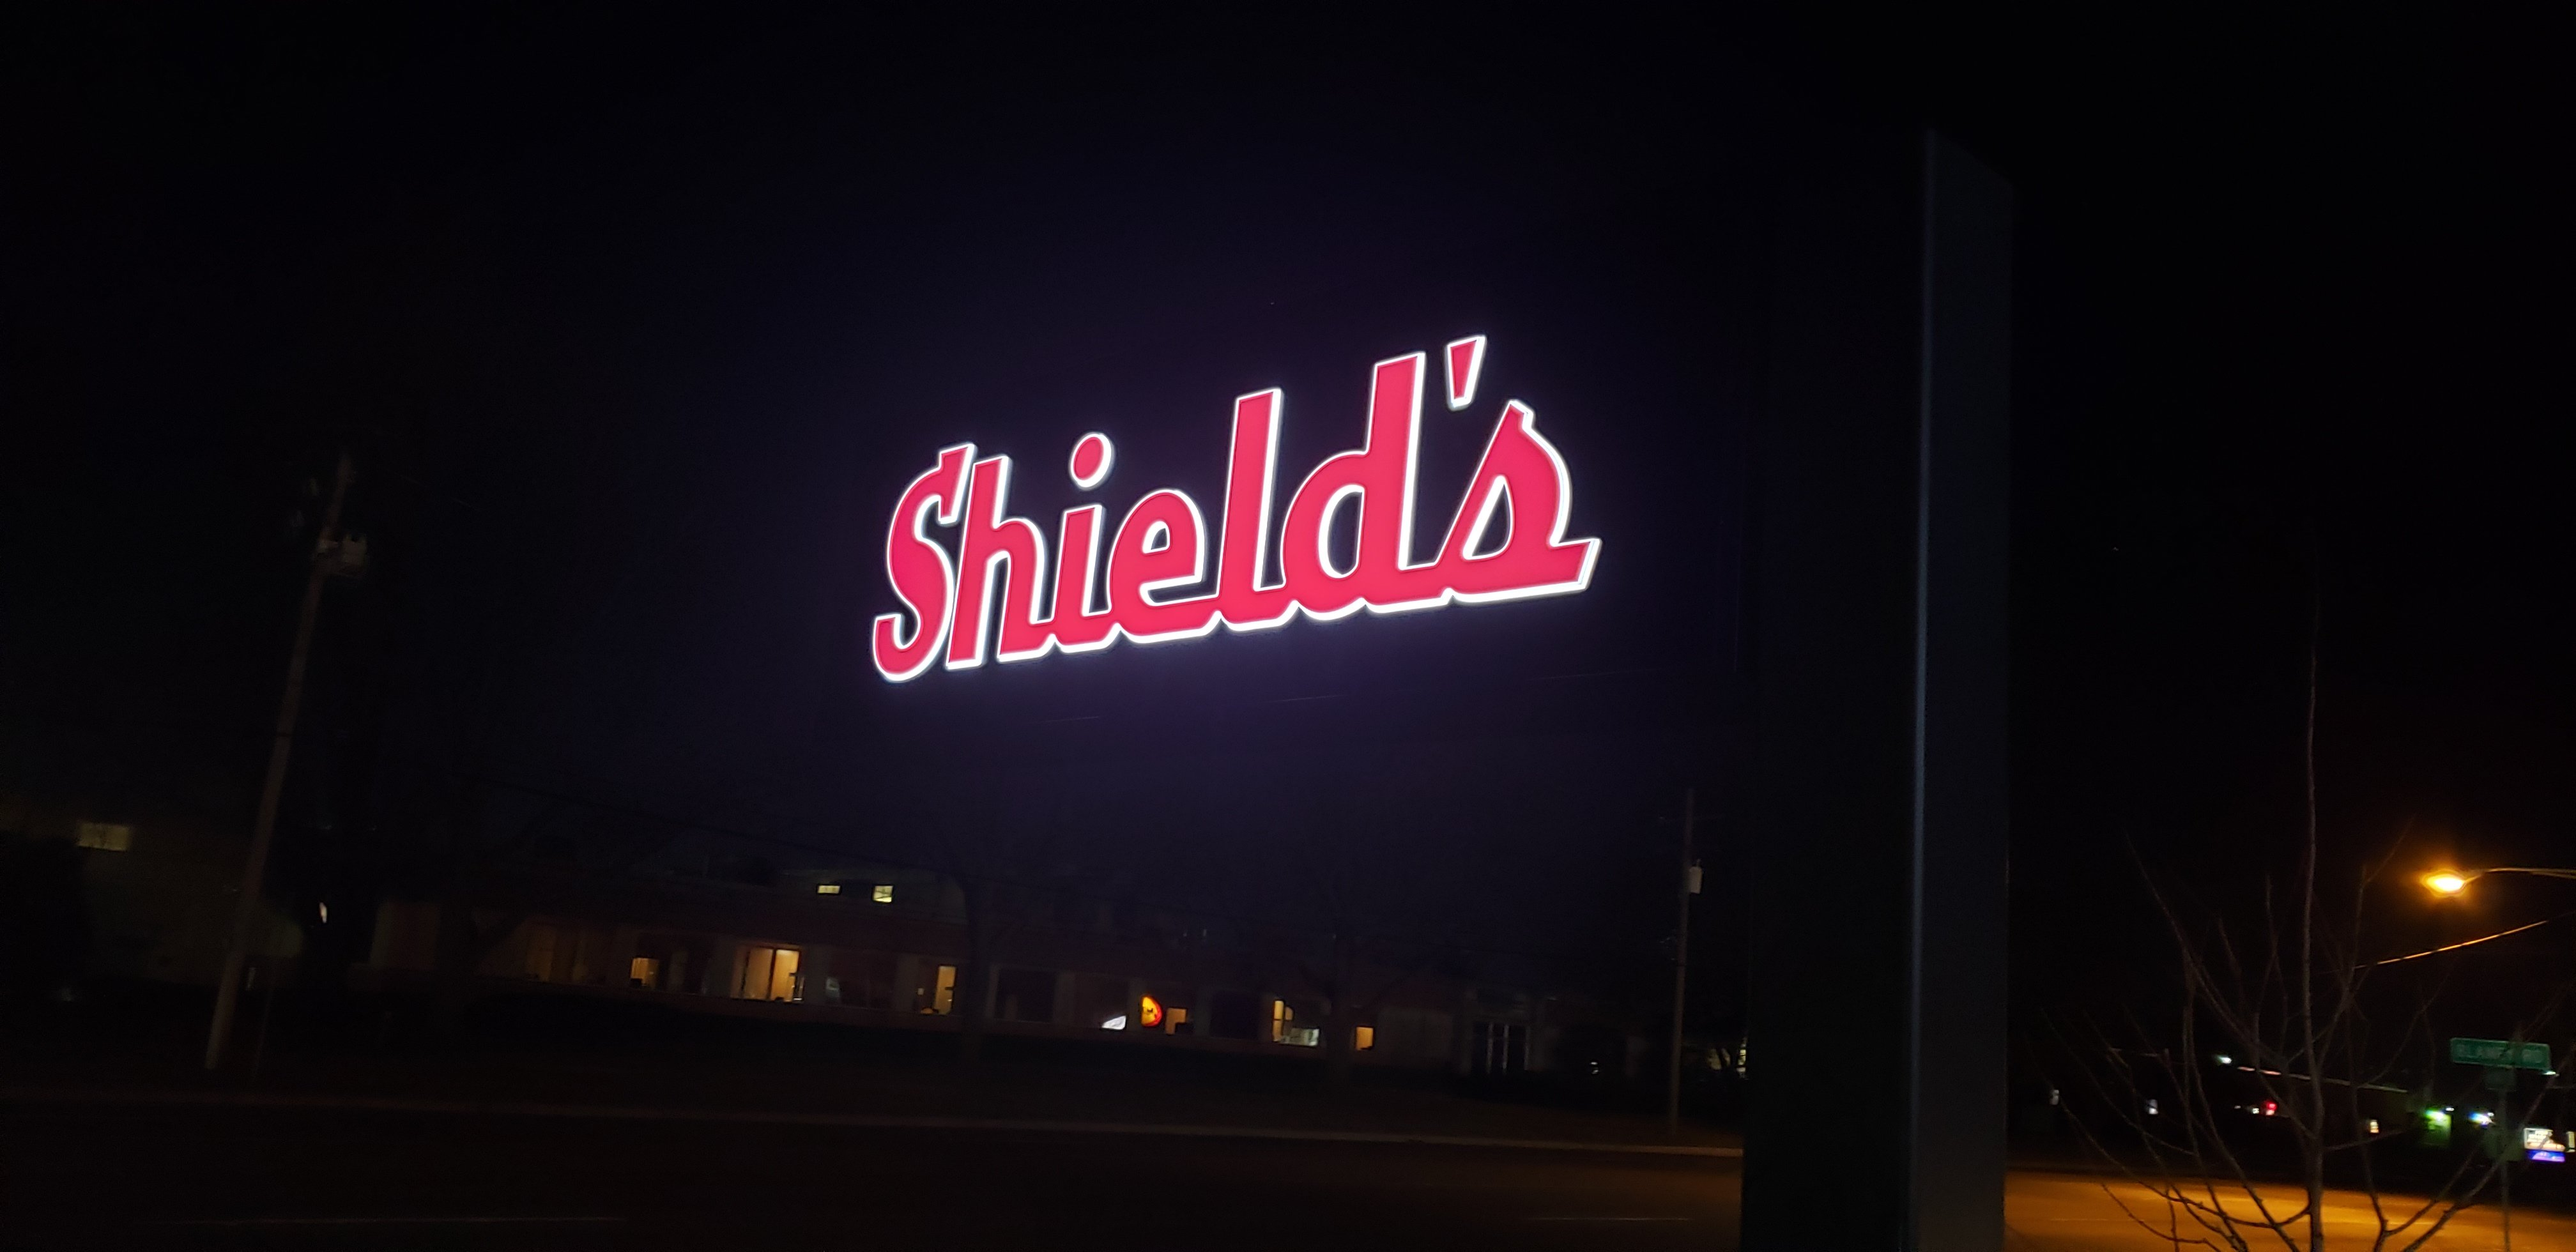 Shield's Front and Halo lit Illuminating Sign at night